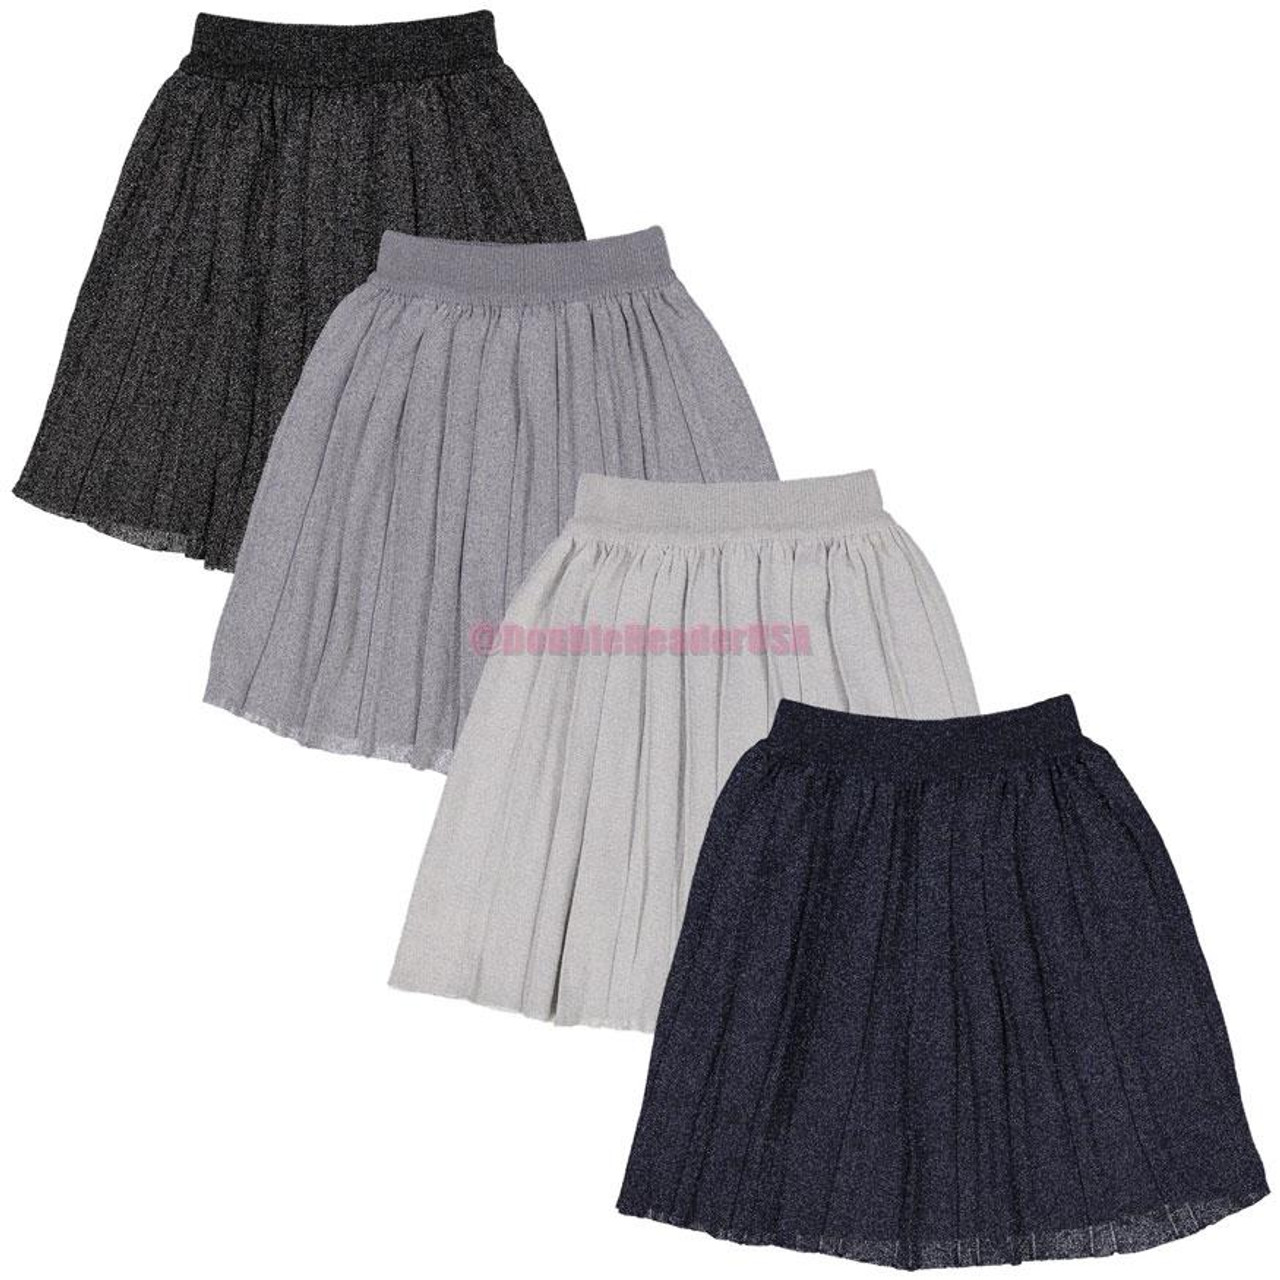 BGDK Girls Pleated Shimmer Skirt